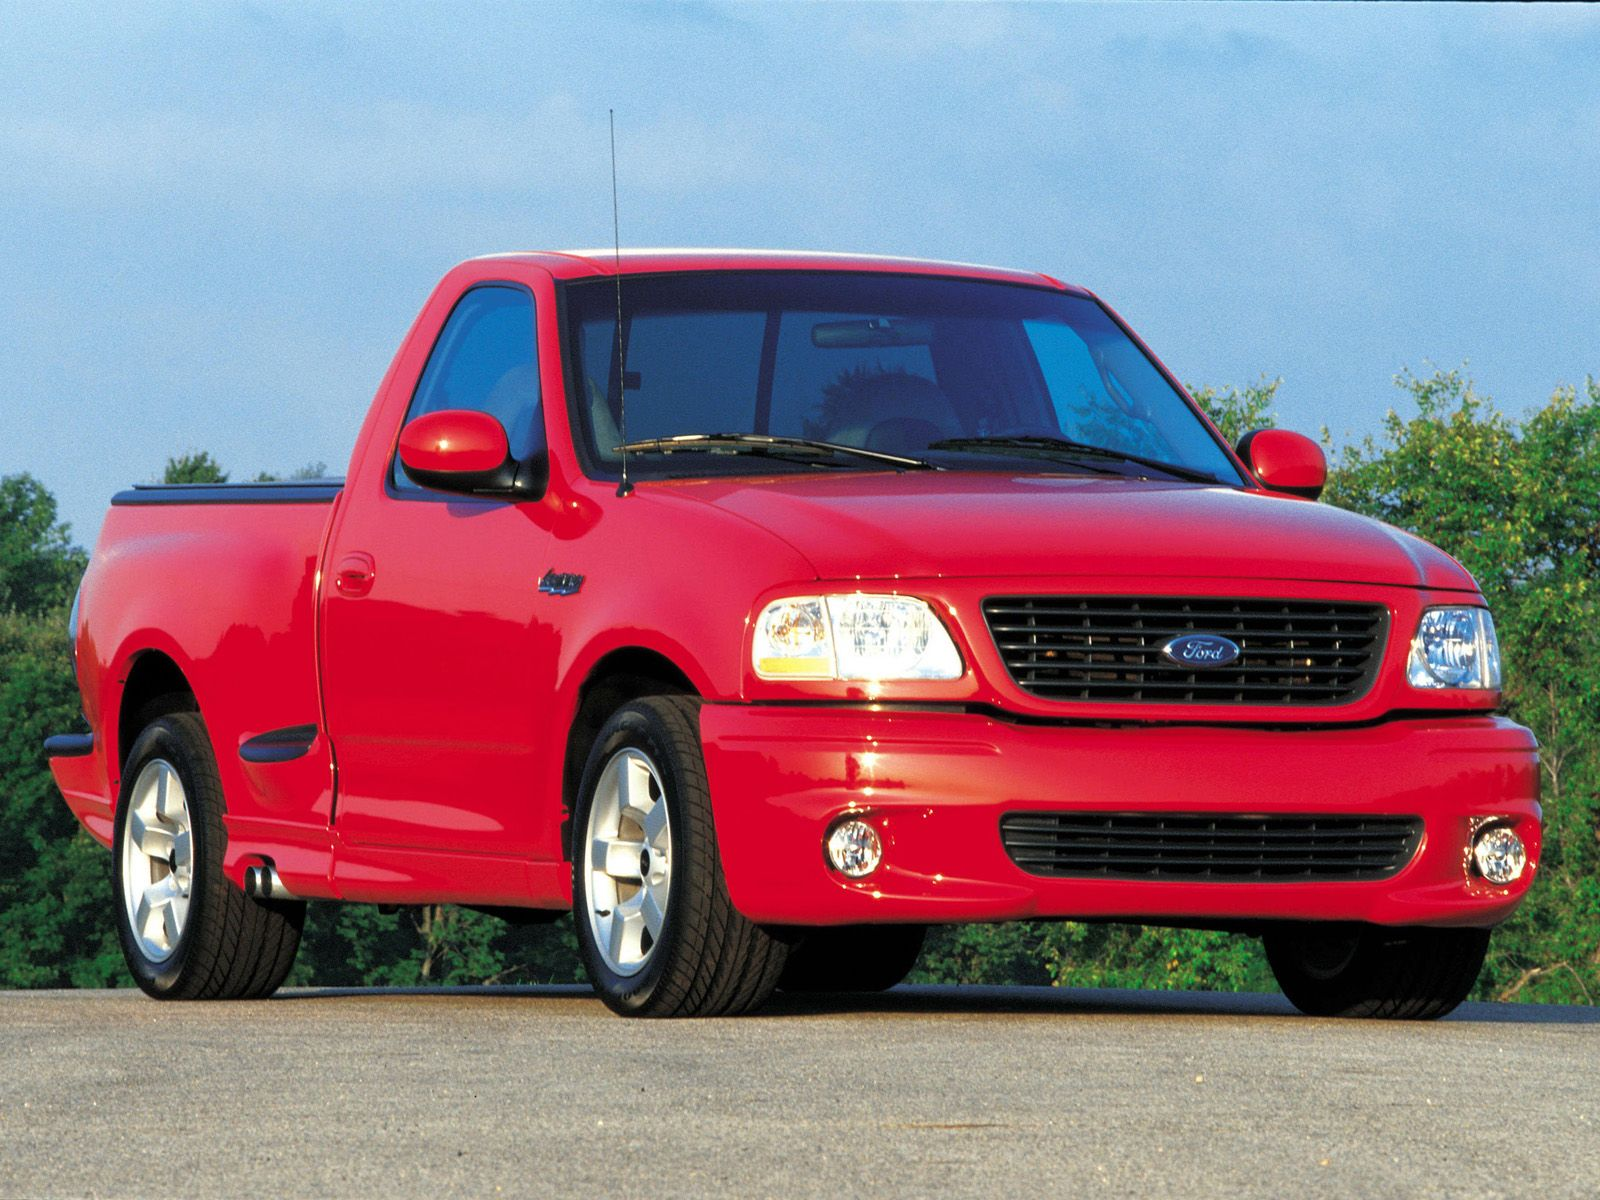 wallpaper cars ford lightning 1024 768 ford lightning wallpaper 44 rh pinterest com